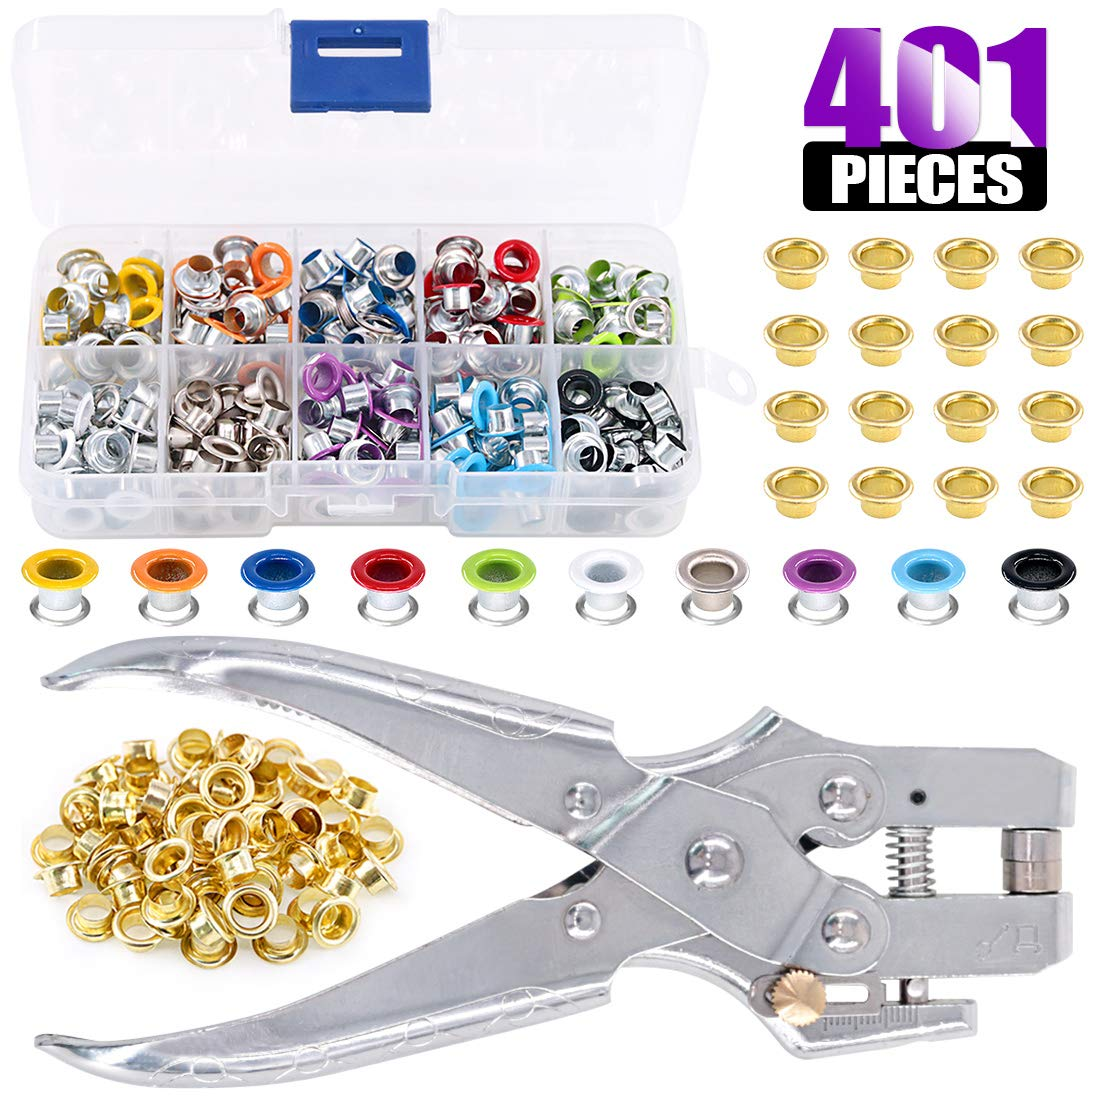 Swpeet 300Pcs 10 Colors 3/16 inch Metal Grommets Kit and 1Pcs Eyelet Hole Punch Pliers with 100Pcs Gold Grommets, Metal Eyelets Kits Shoe Eyelets Grommet Sets for Leather Fabric Belt Clothes by Swpeet